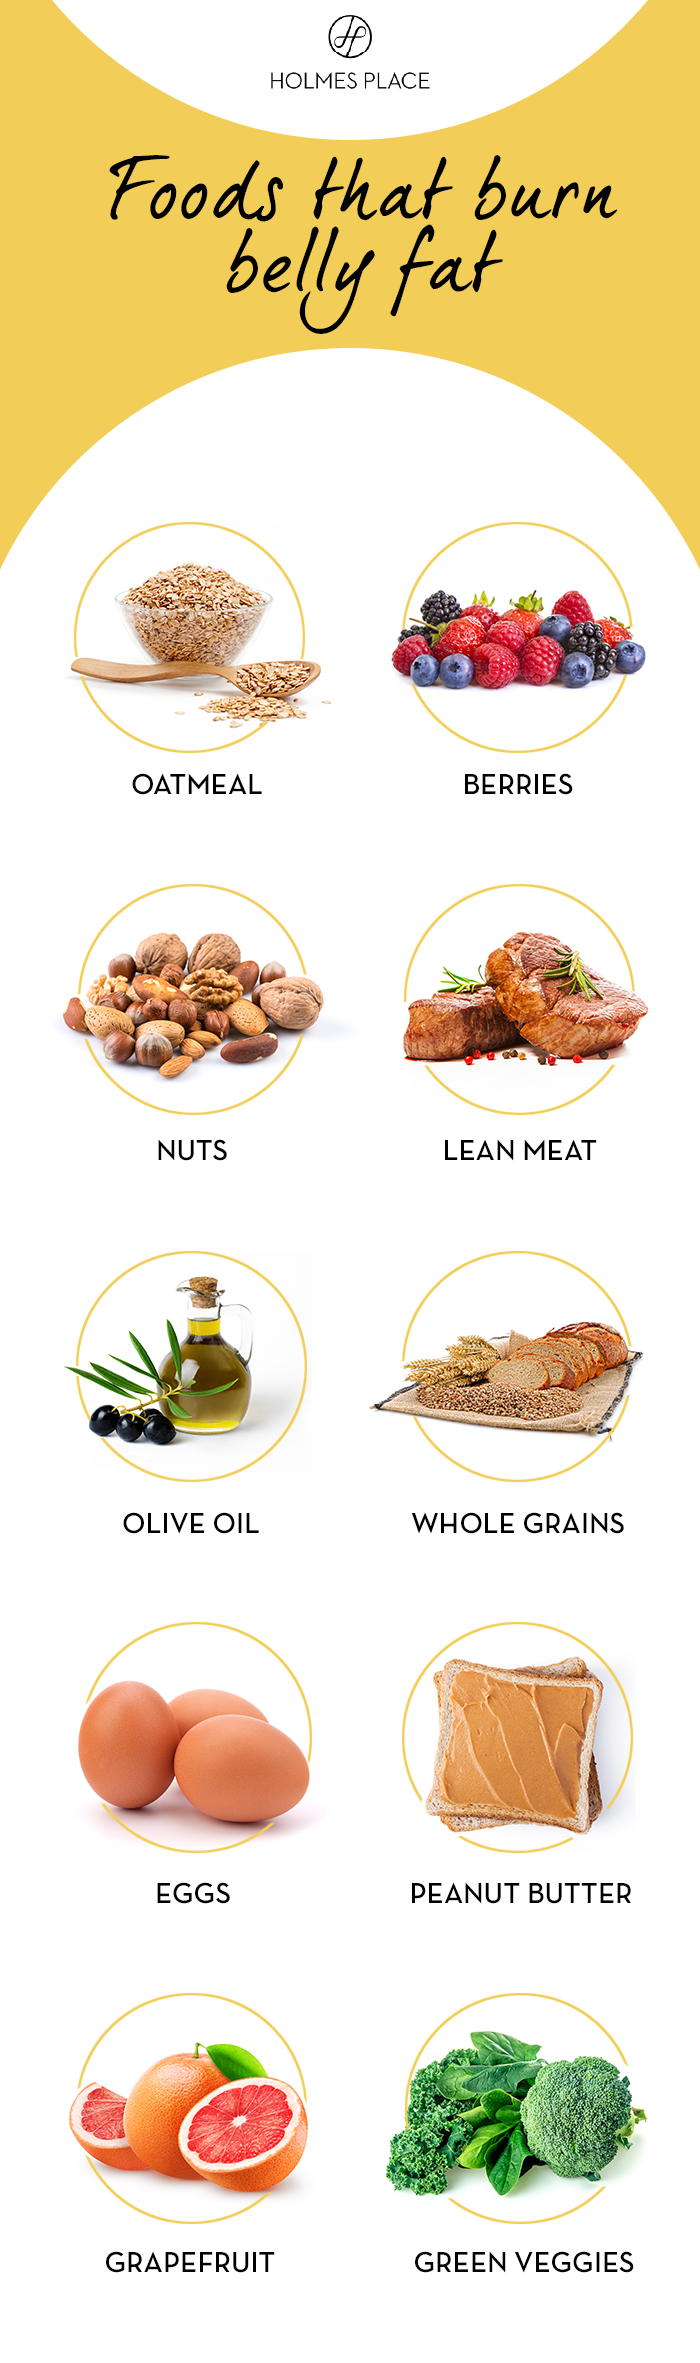 Holmes Place | Foods that burn belly fat